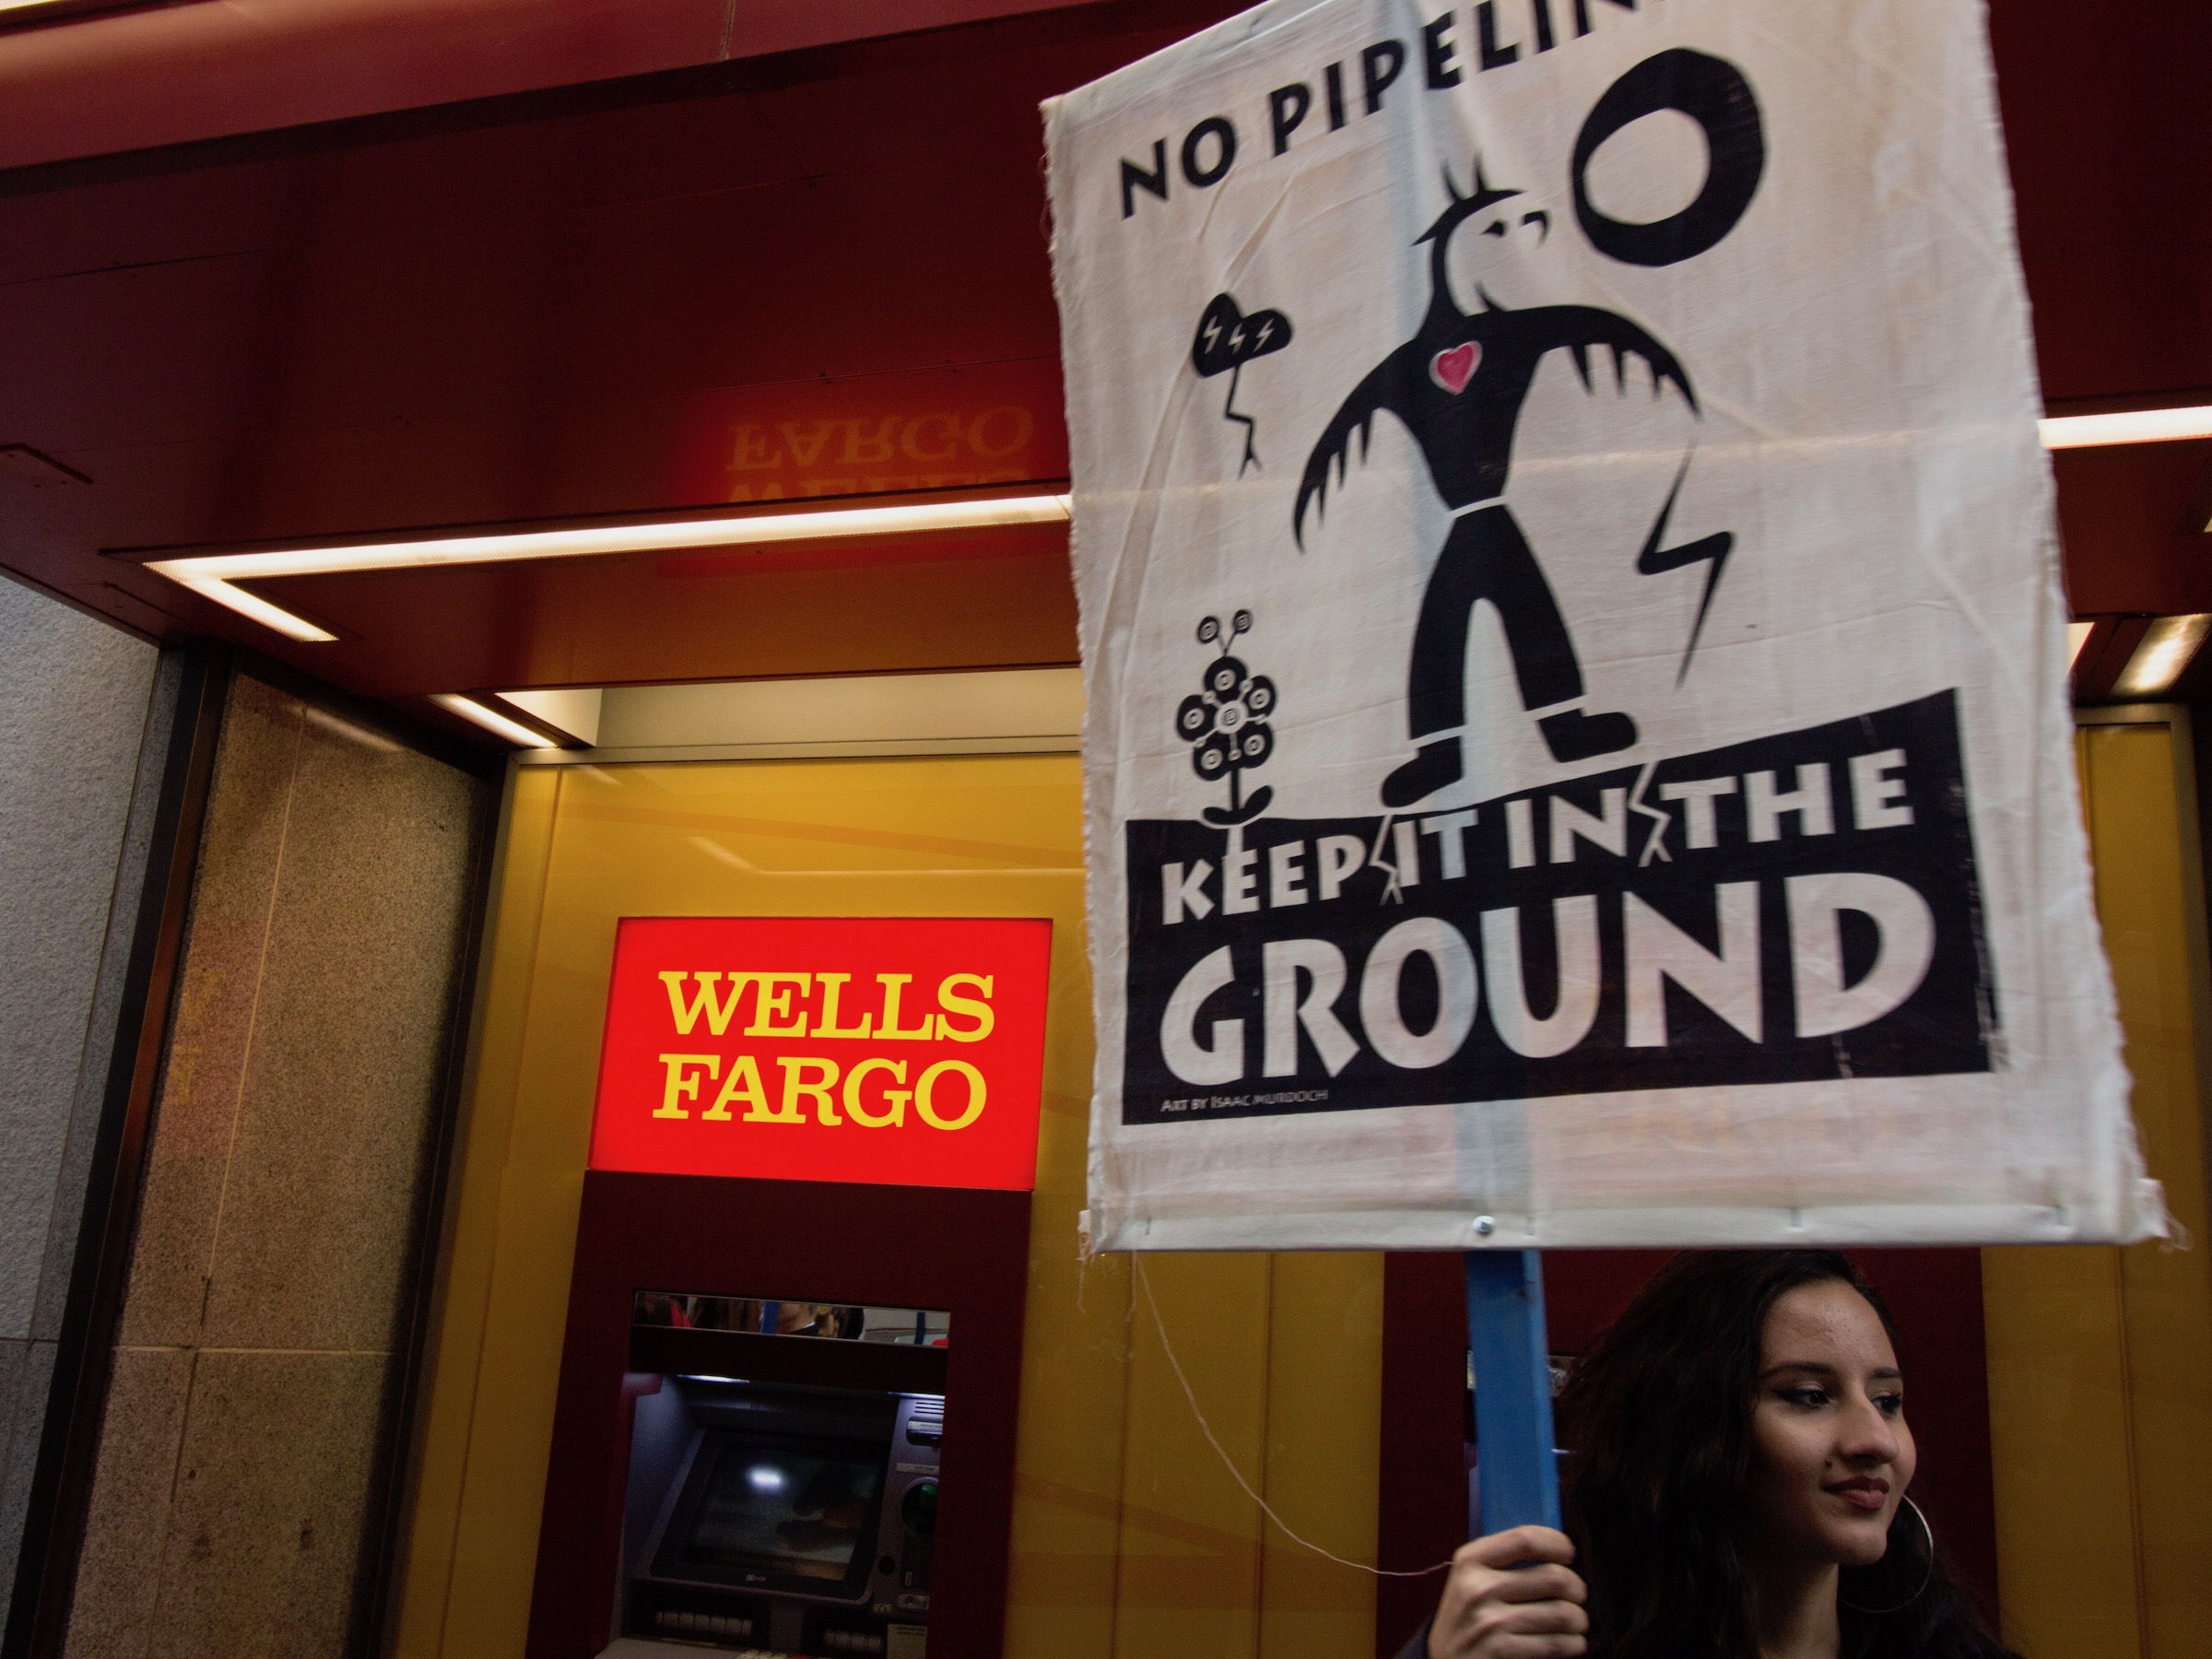 YES! Magazine: Native activists continue to pressure banks on pipelines